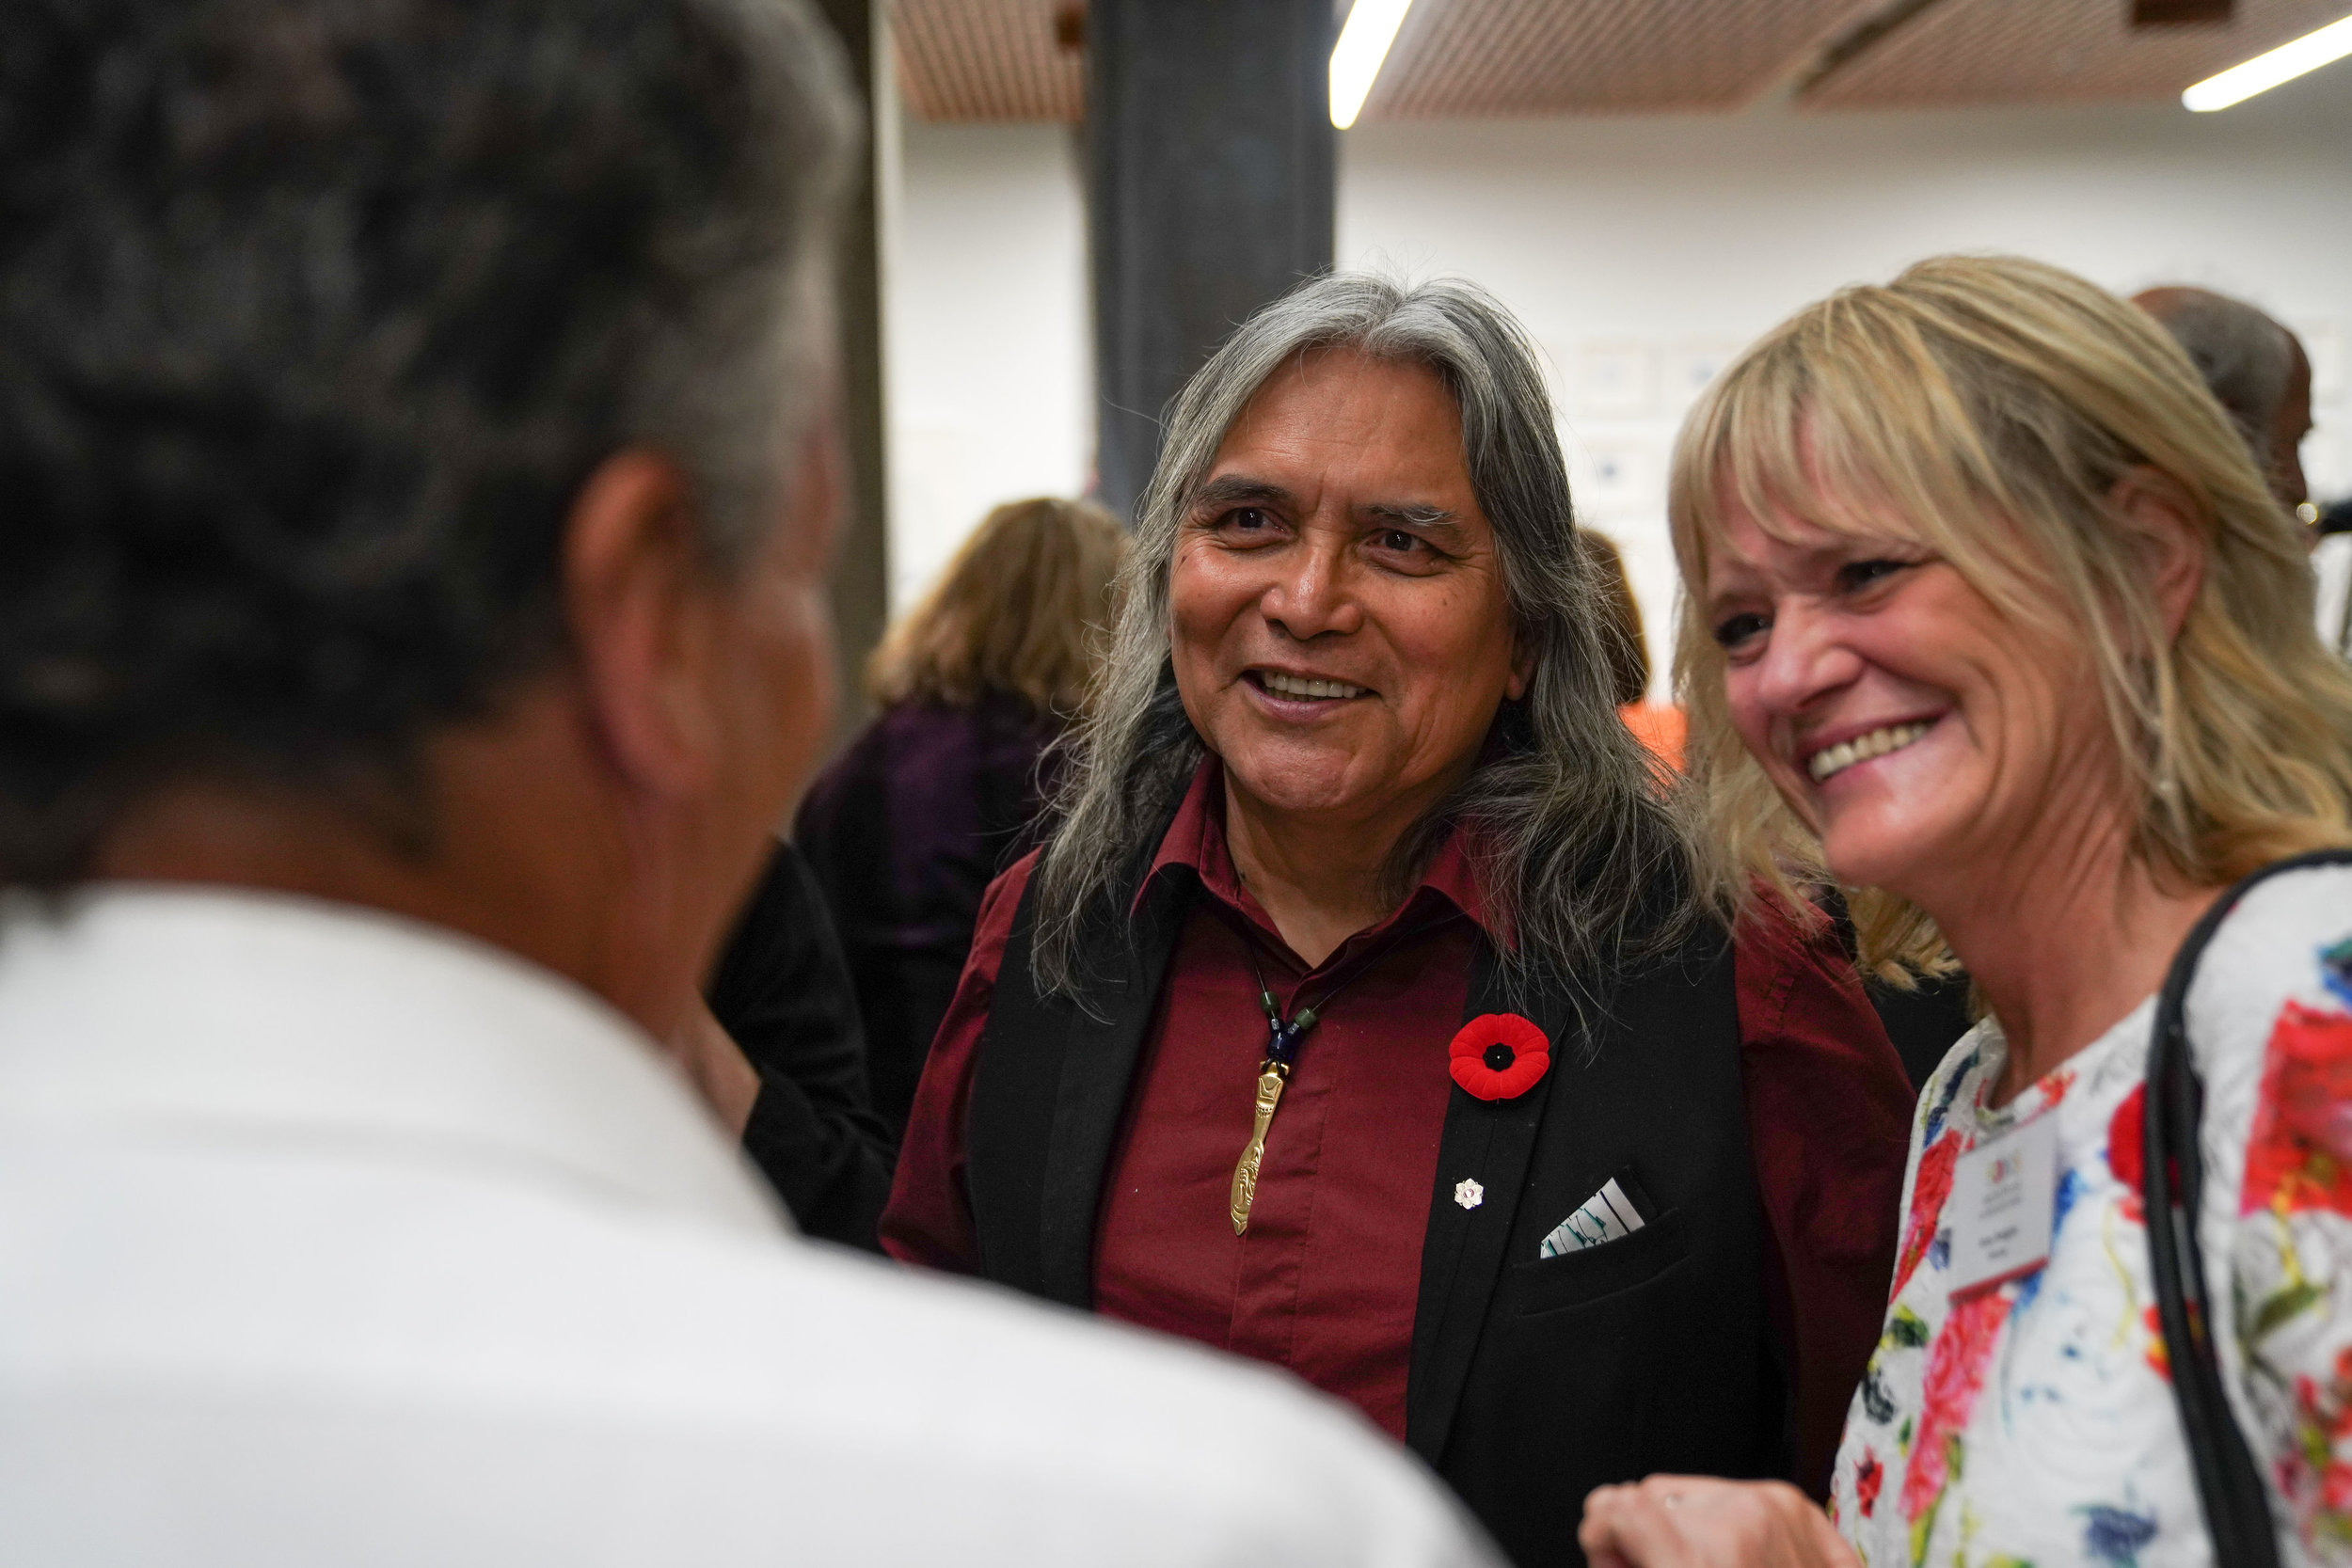 Past FANS Distinguished Artist Xwalacktun and FANS Board member Anne Rodgers